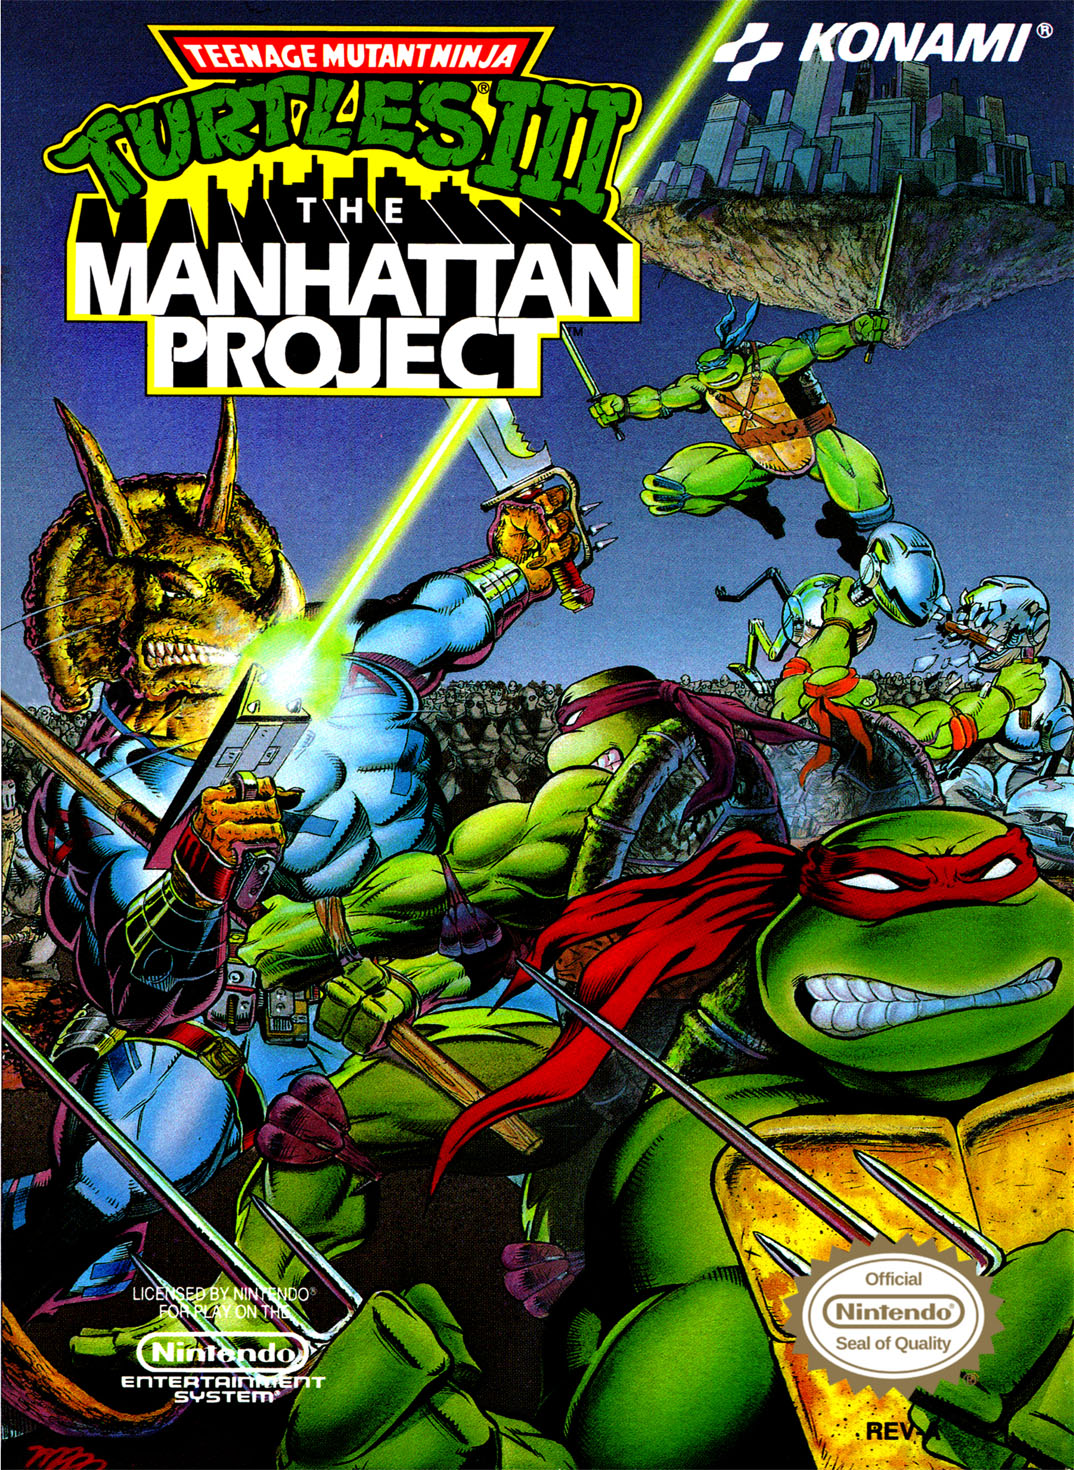 the manhattan project 80s movie